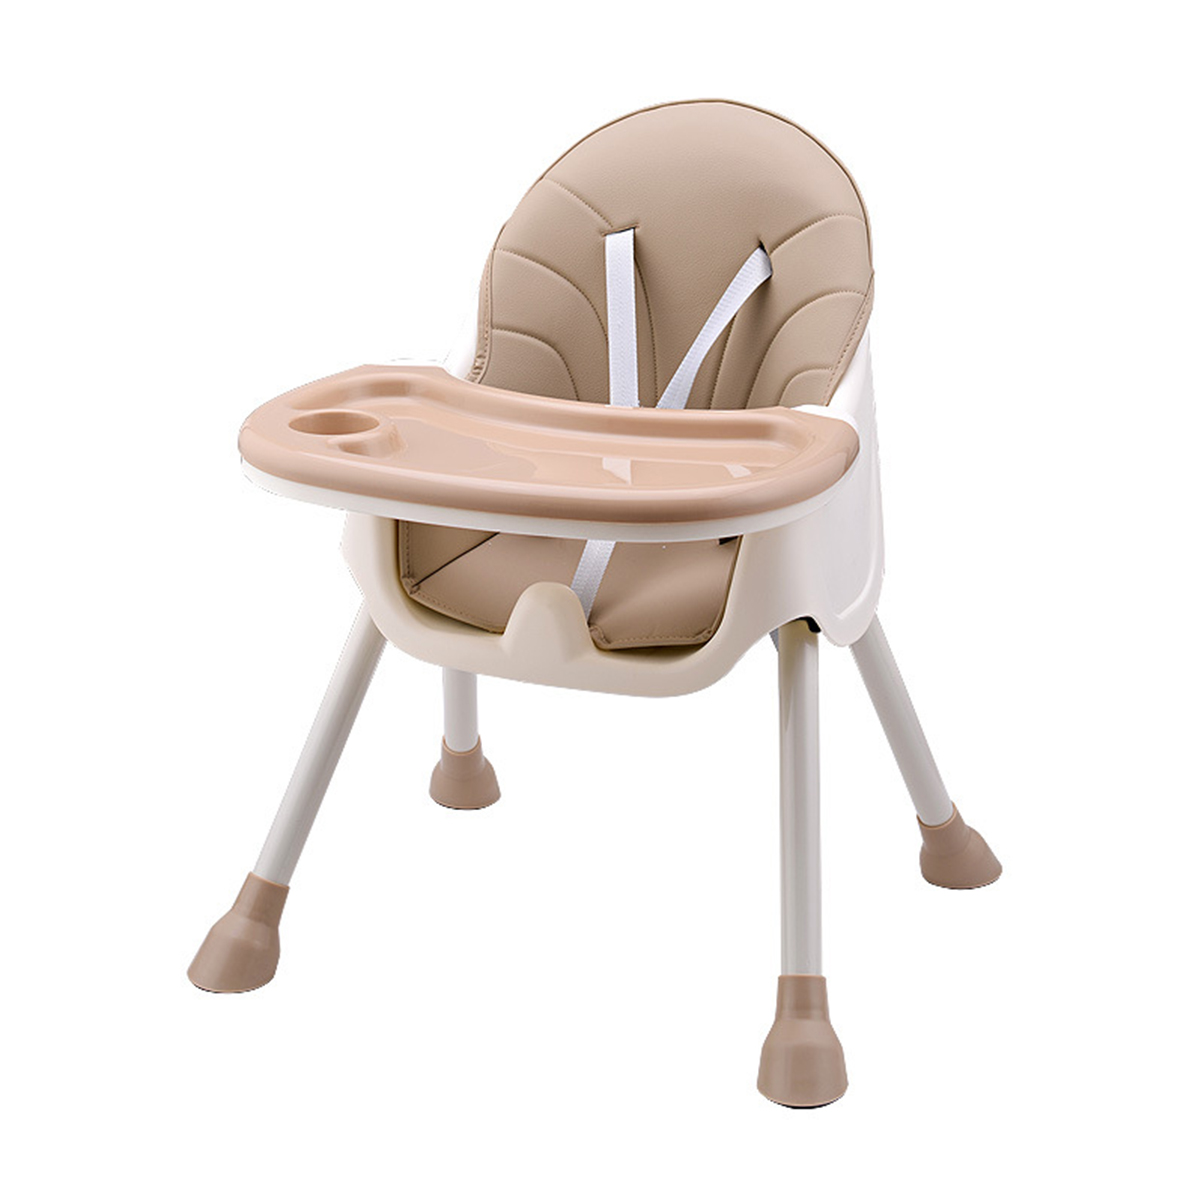 Feeding Infant Dining Chair Adjustable Toddler Portable Multi-function Baby Seat Home Indoor Highchair for Childrens